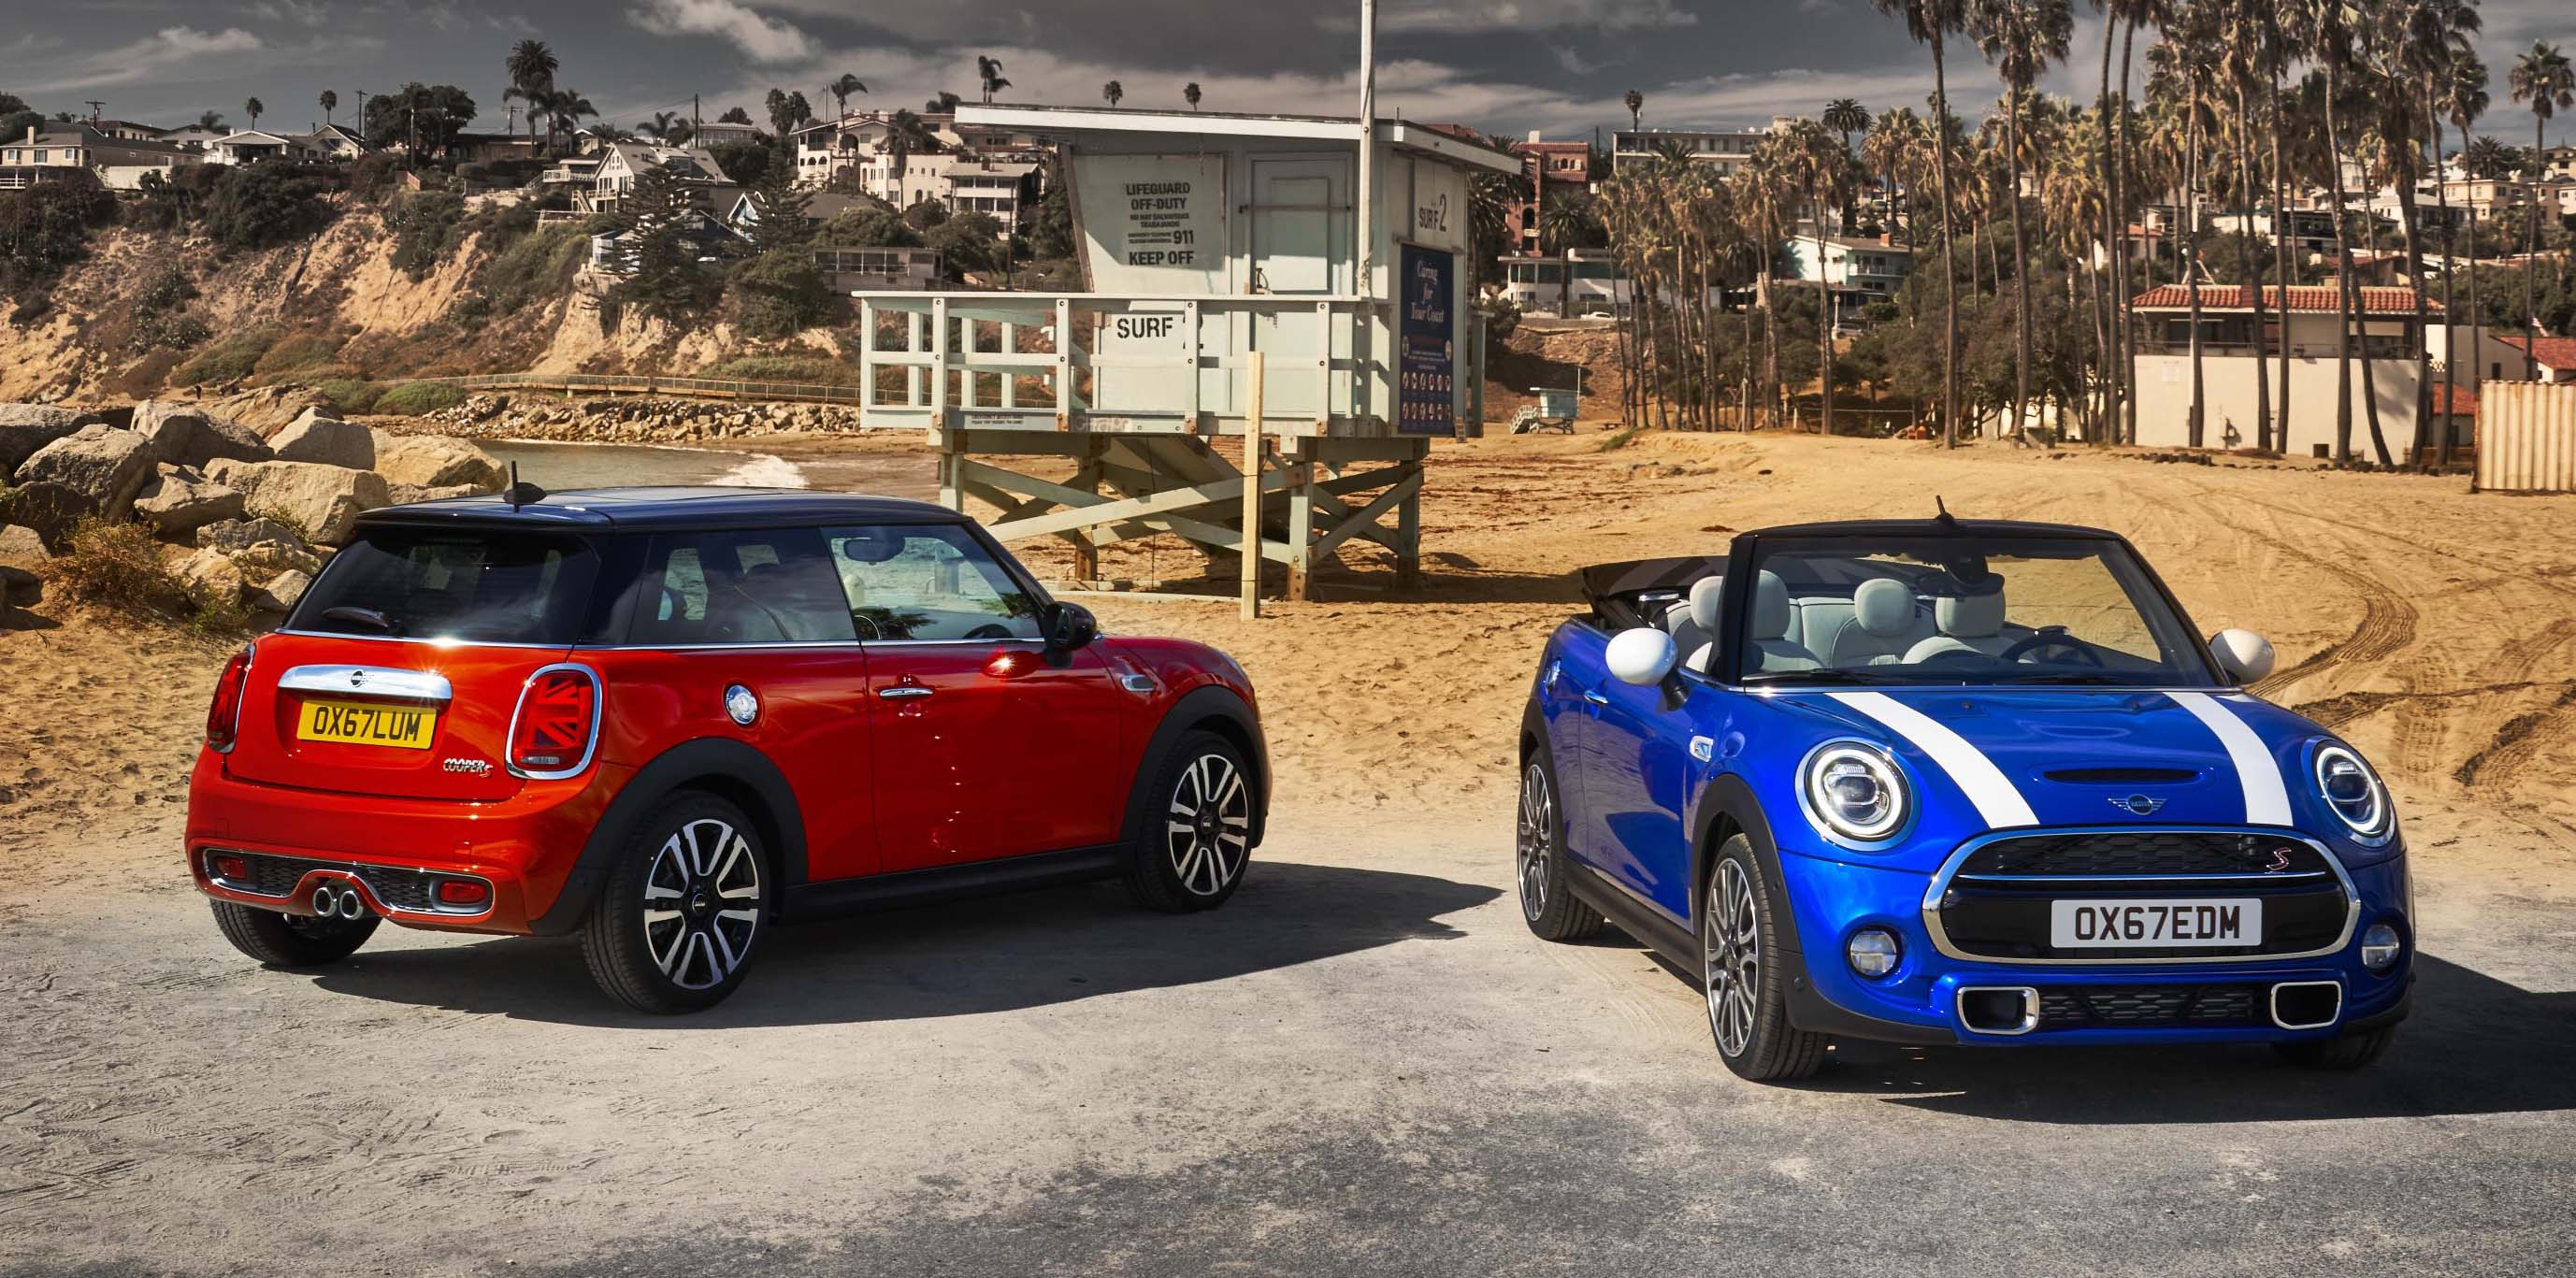 The New Mini 3 Door Hatch, Mini 5 Door Hatch And Mini Convertible